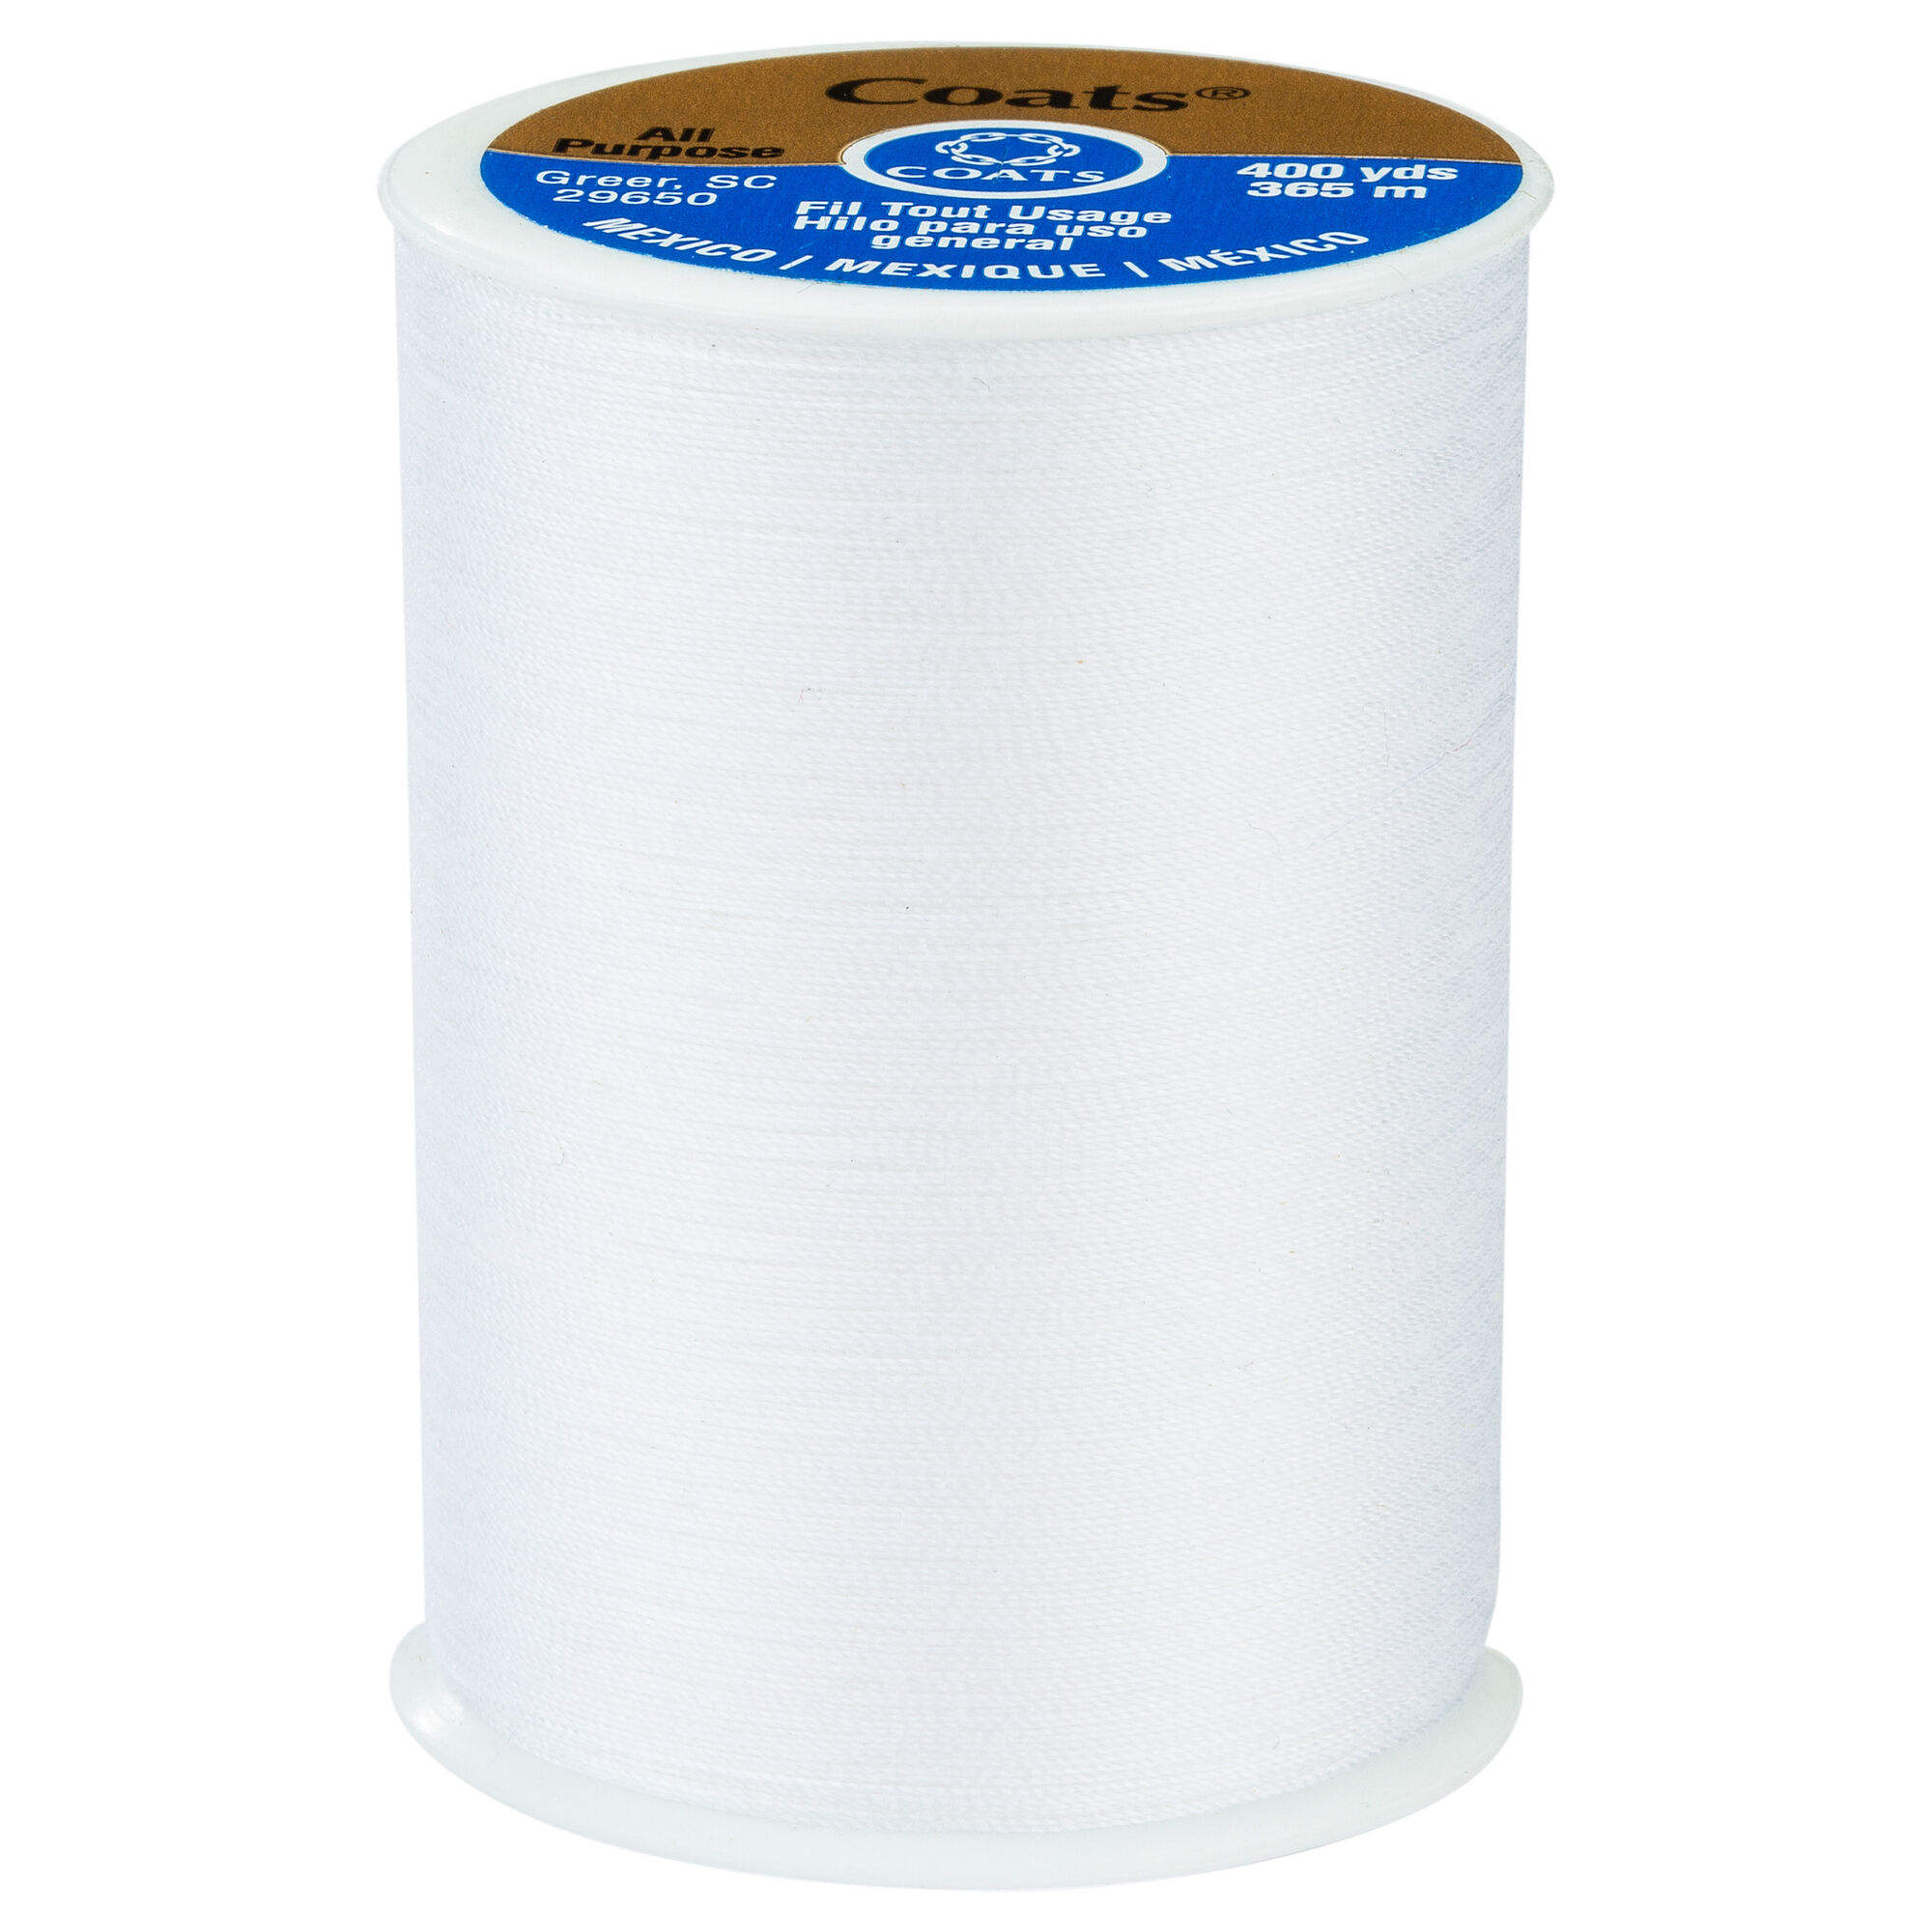 unbleached cotton yarn